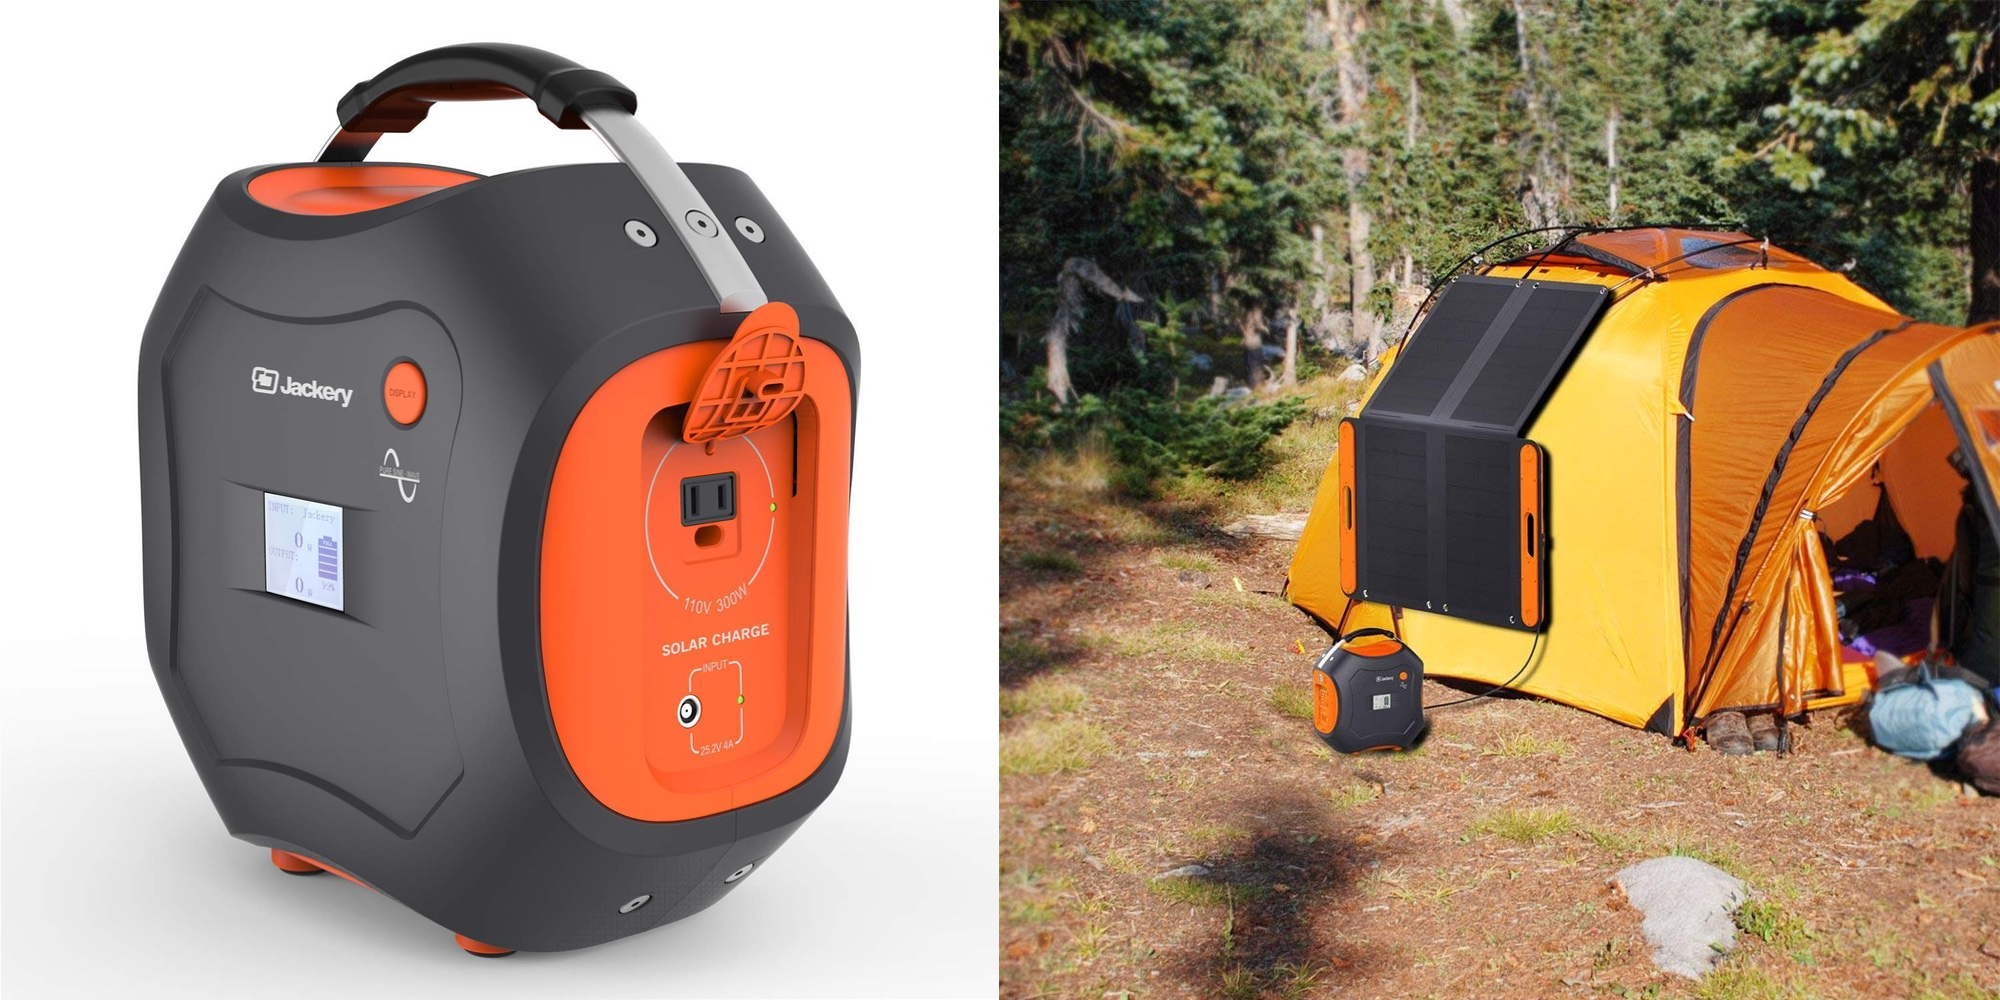 Jackery's 500Wh Portable Generator returns to a low of $400 shipped (Reg. $579)